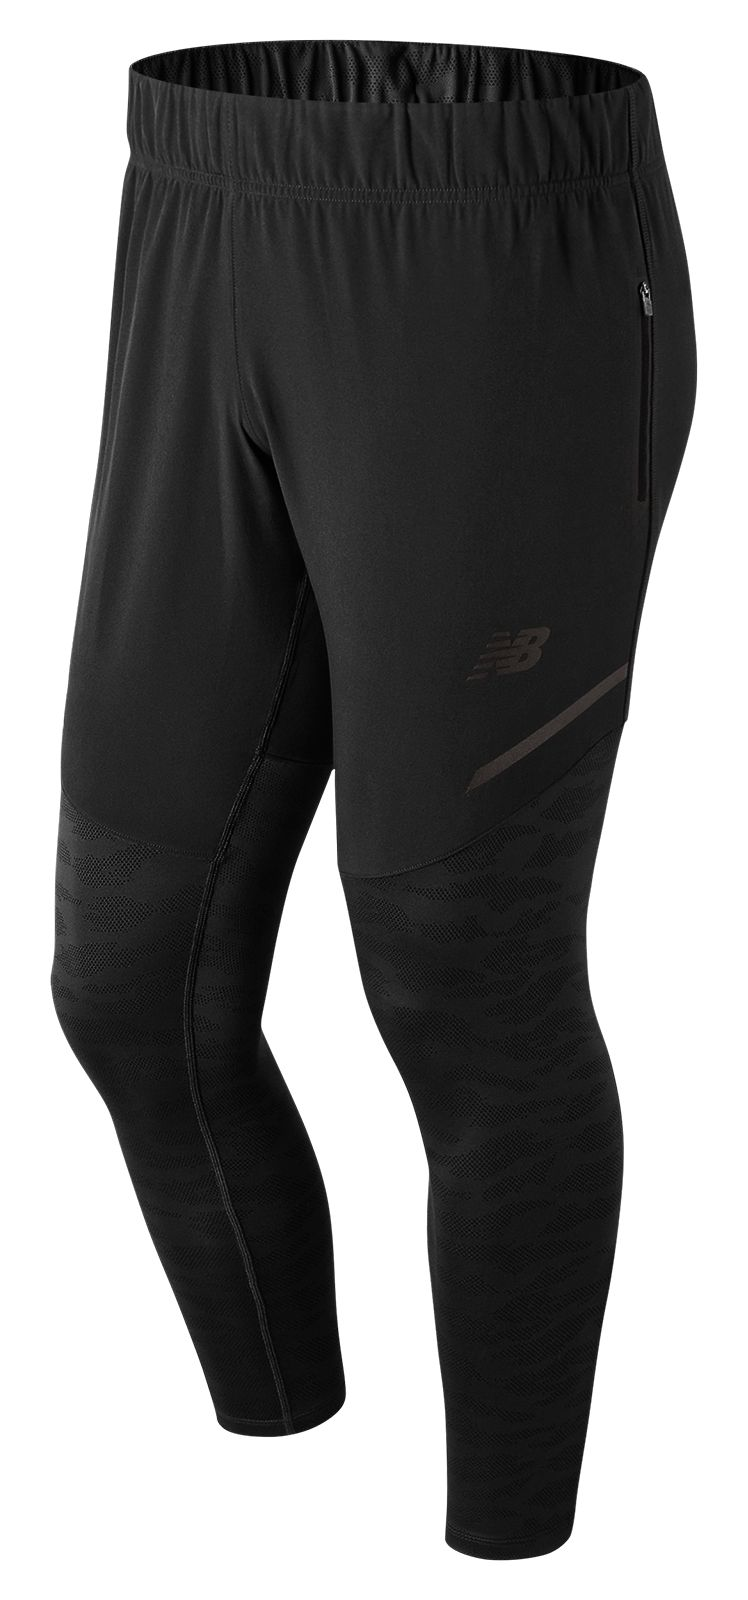 Men's Lynx Tight